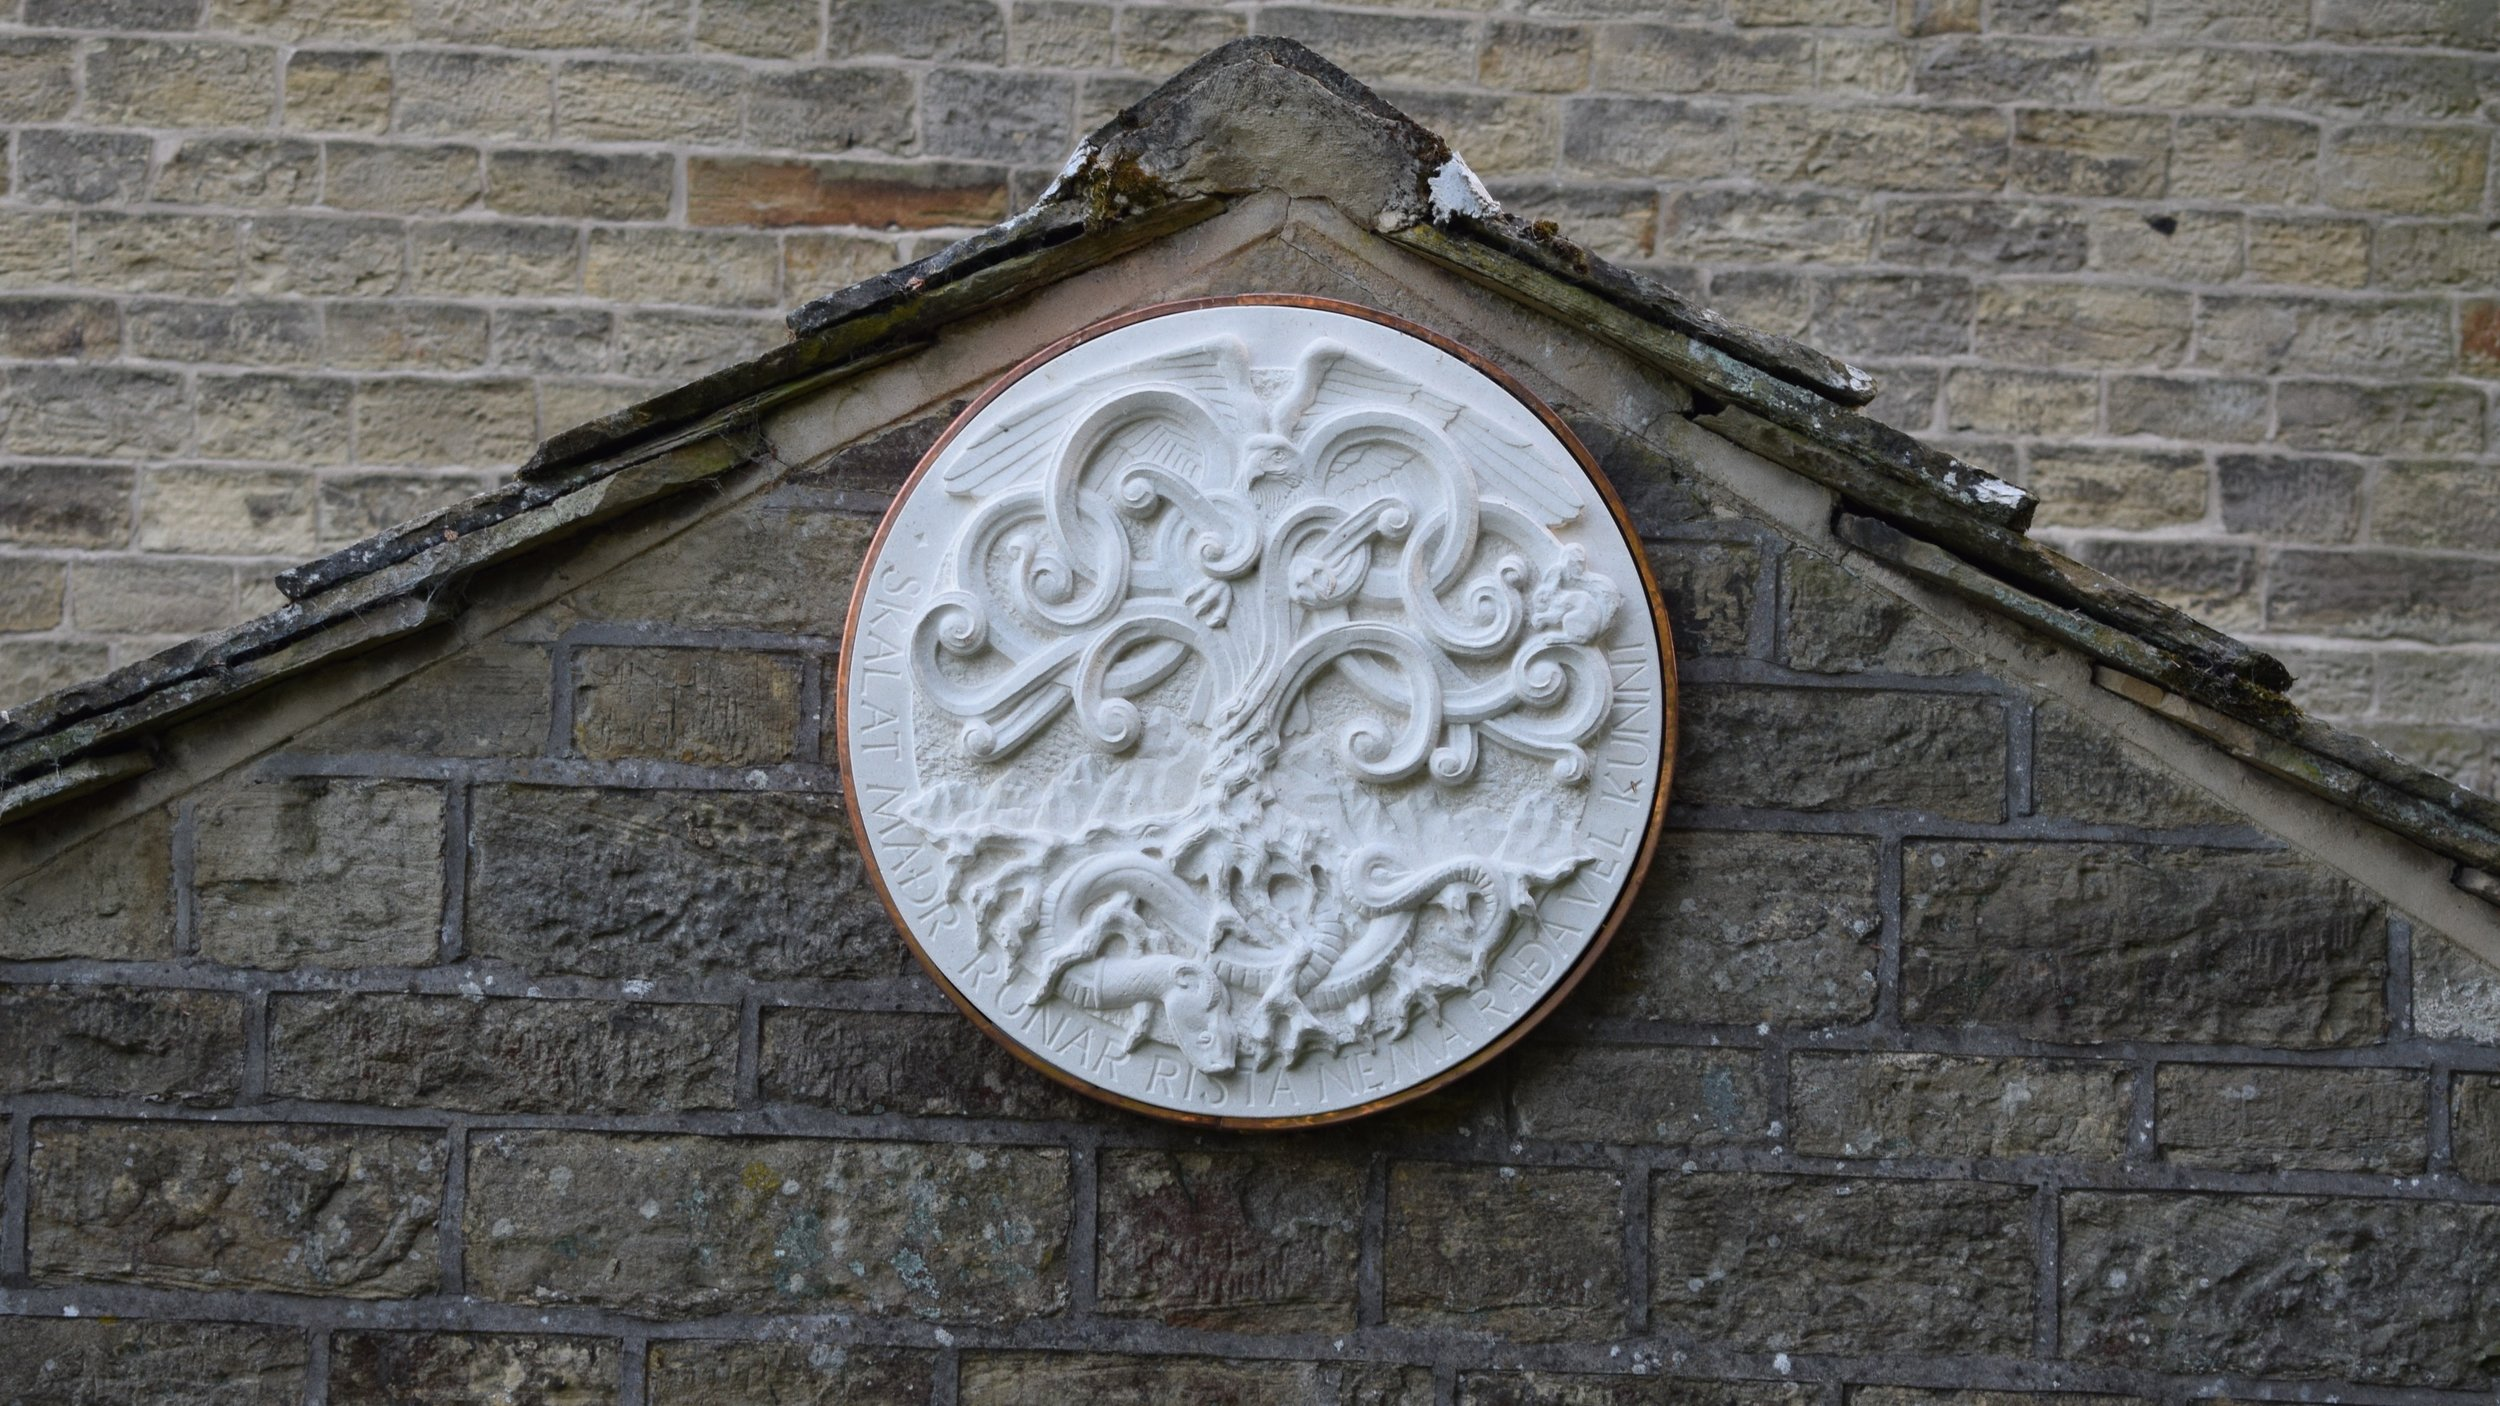 Yggdrasil roundel in copper clad frame